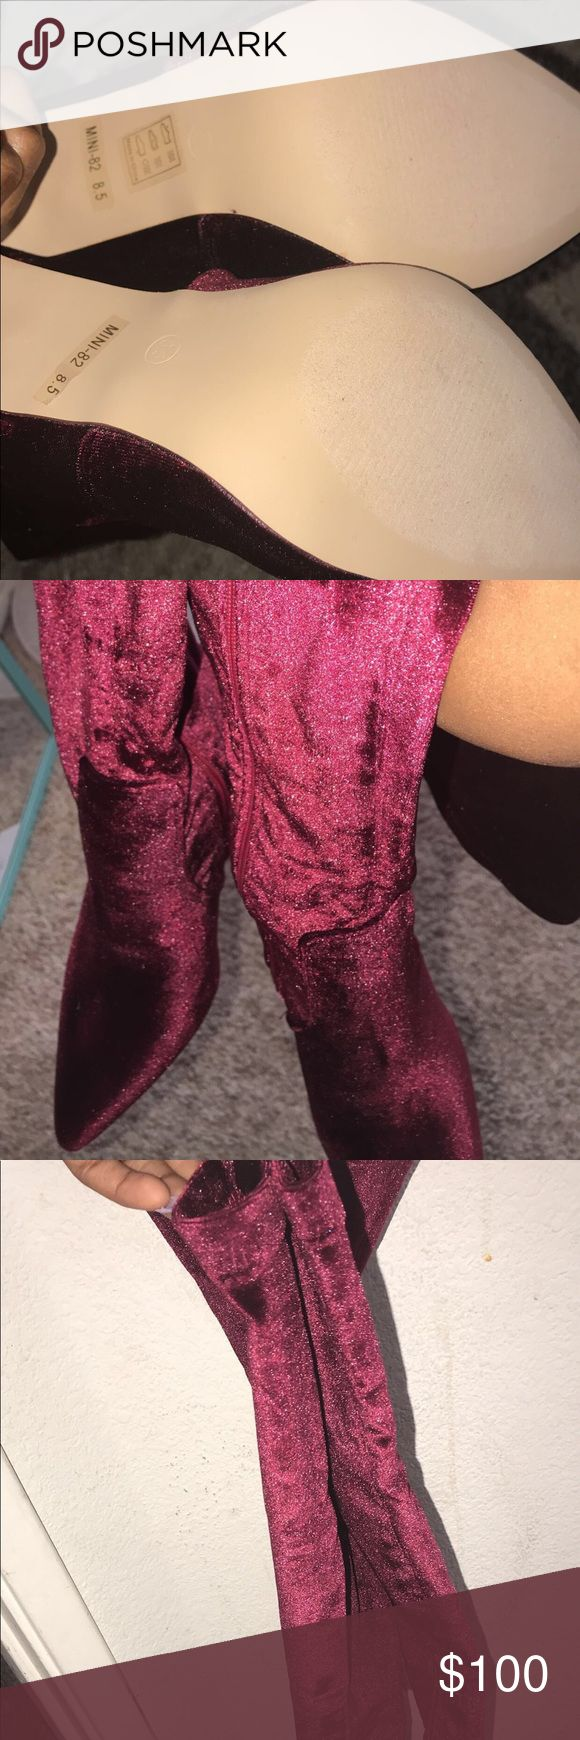 Wine boots/sell I purchased these Bomb Ass Boots that i really do not want to Let Go... but I can't fit them and I've been too busy to send them back 🤦🏽♀️🤷🏽♀️ So I'm willing to let them go for a decent price and to a person who can rock these Bad Babies‼️‼️ Fashion Nova Shoes Heels